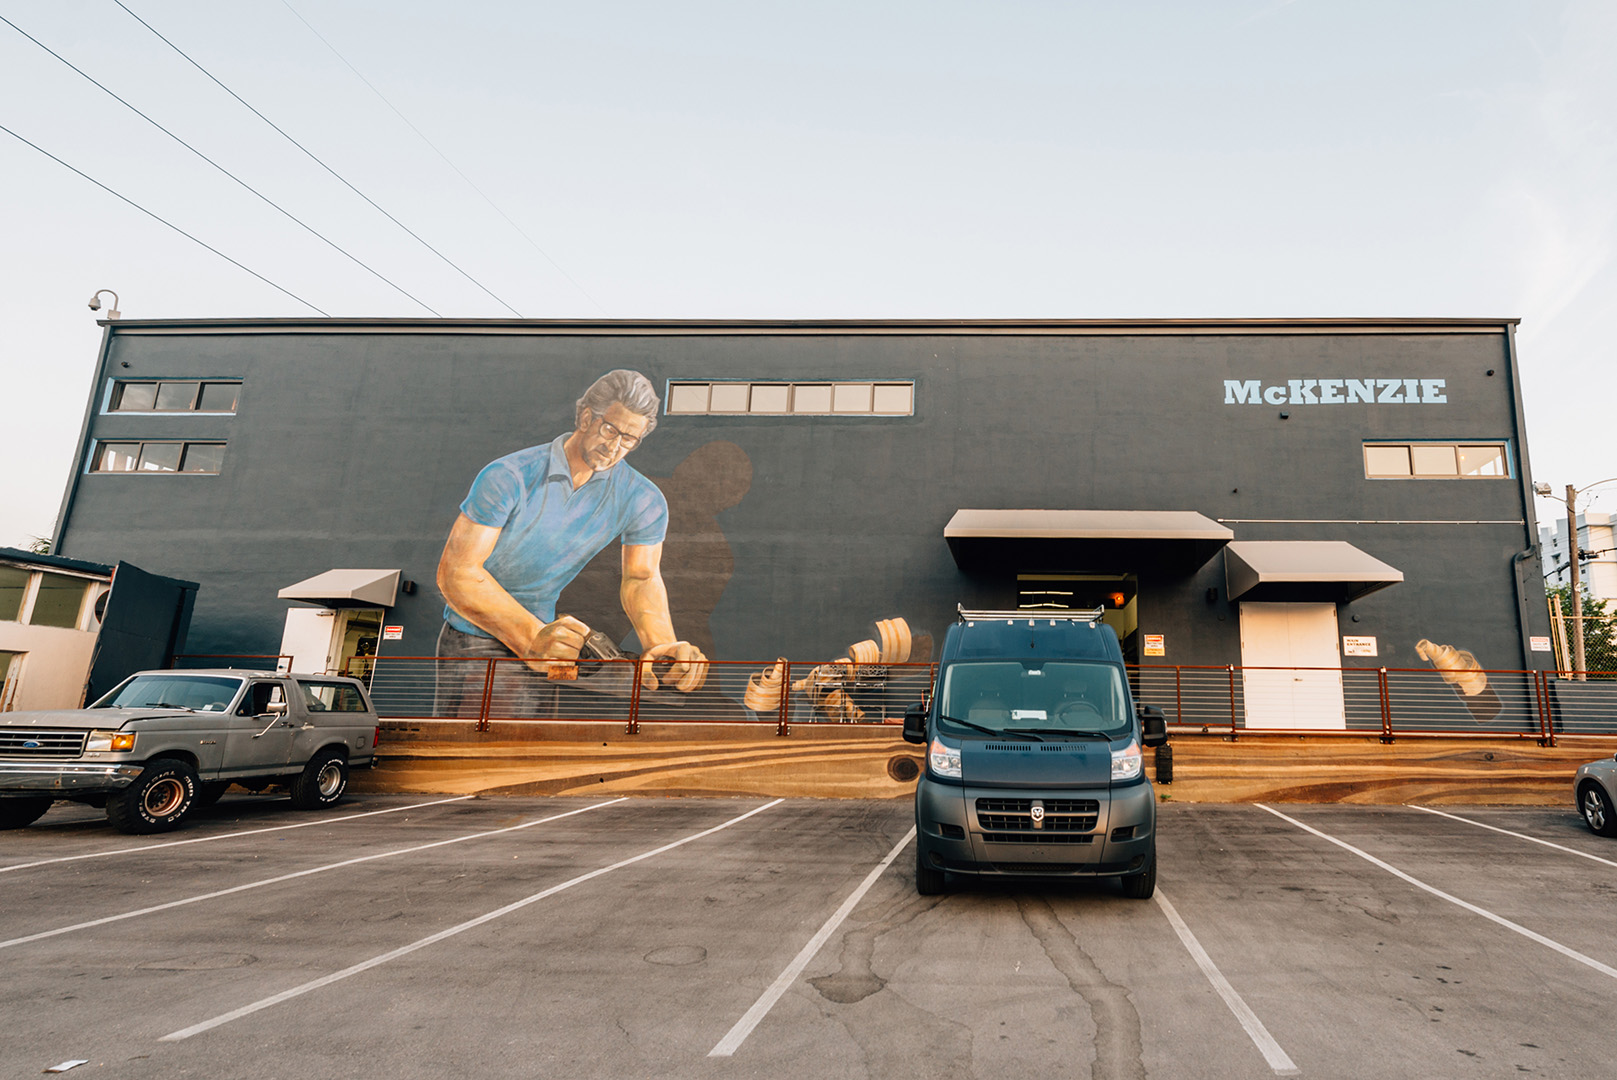 Mckenzie Construction | McKenzie Headquarters